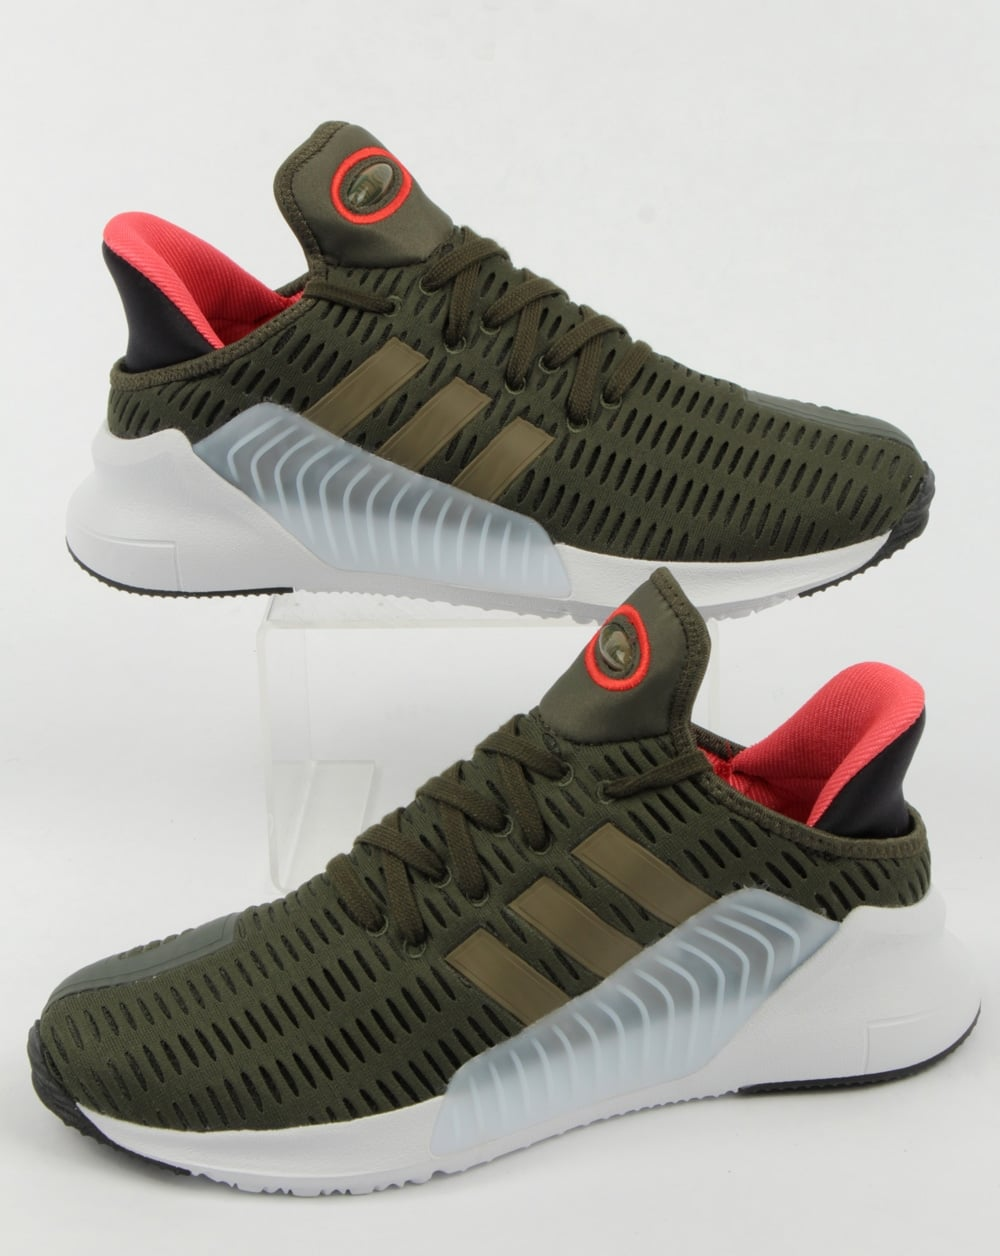 premium selection 5ba60 2d991 adidas Trainers Adidas Climacool 02 17 Trainers Night Cargo Olive